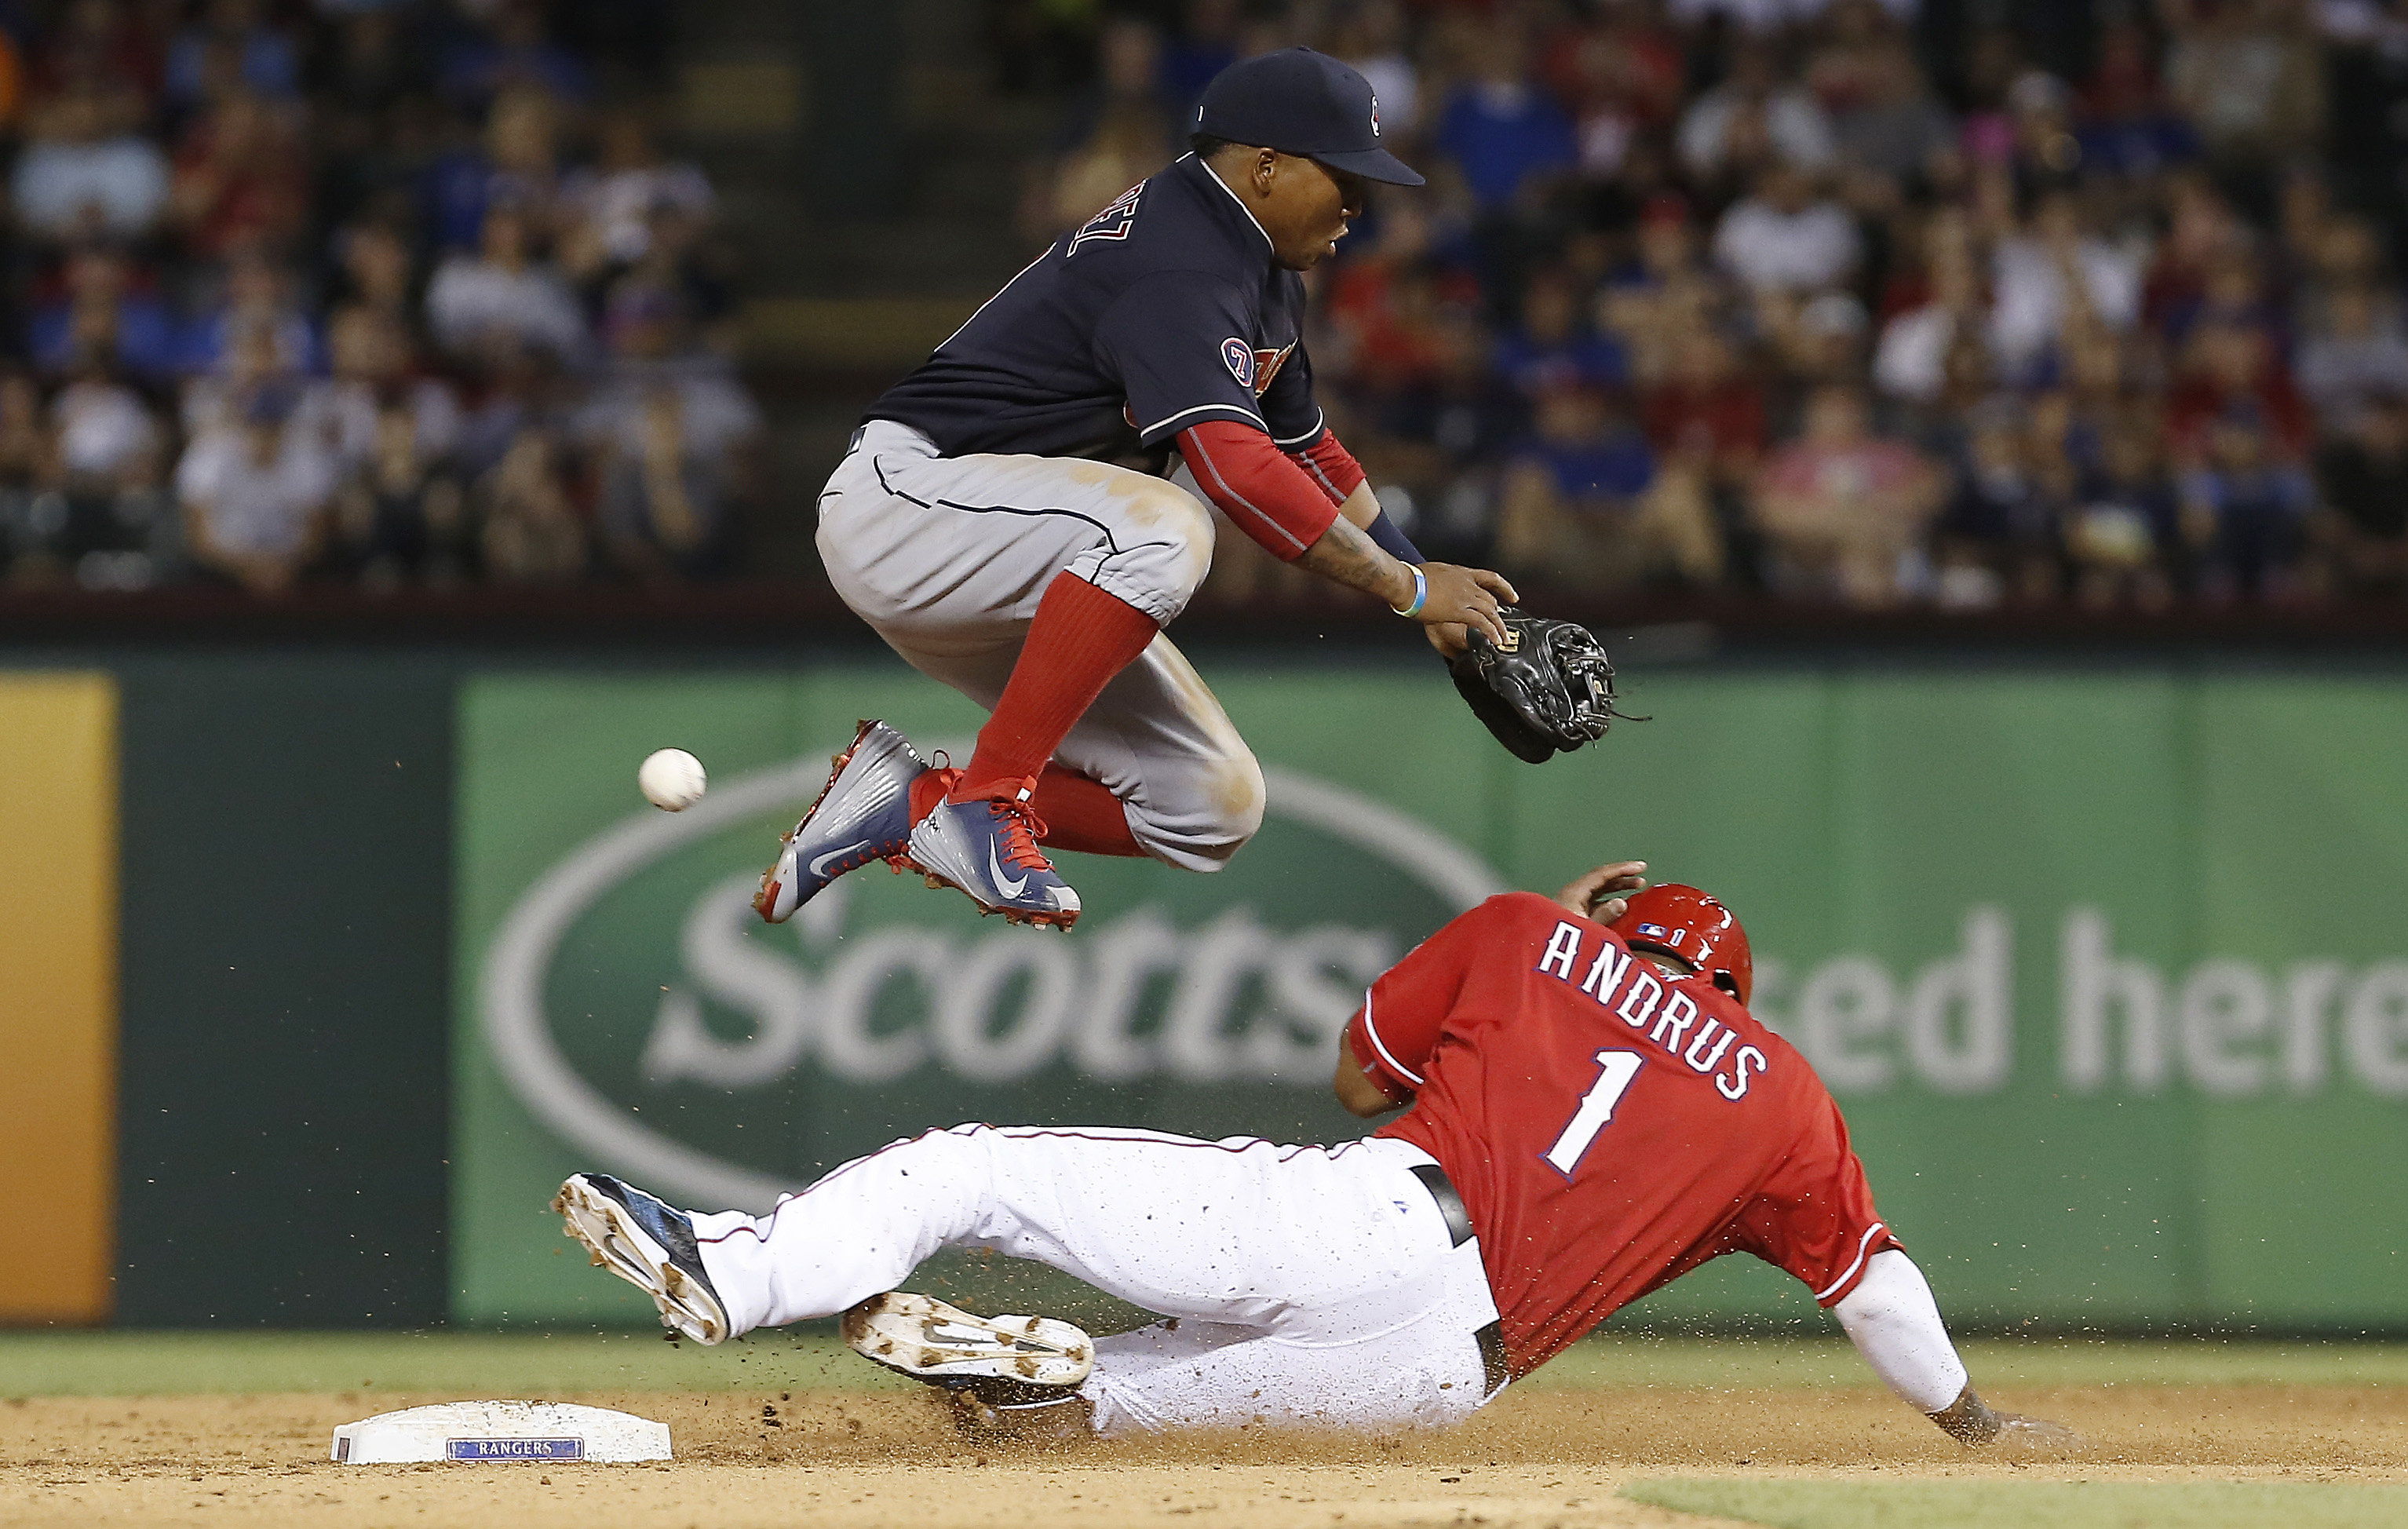 Cleveland Indians shortstop Jose Ramirez, top, is unable to catch the throw from catcher Roberto Perez as Texas Rangers' Elvis Andrus (1) steals second base during the fifth inning of a baseball game, Saturday, May 16, 2015, in Arlington, Texas. The throw